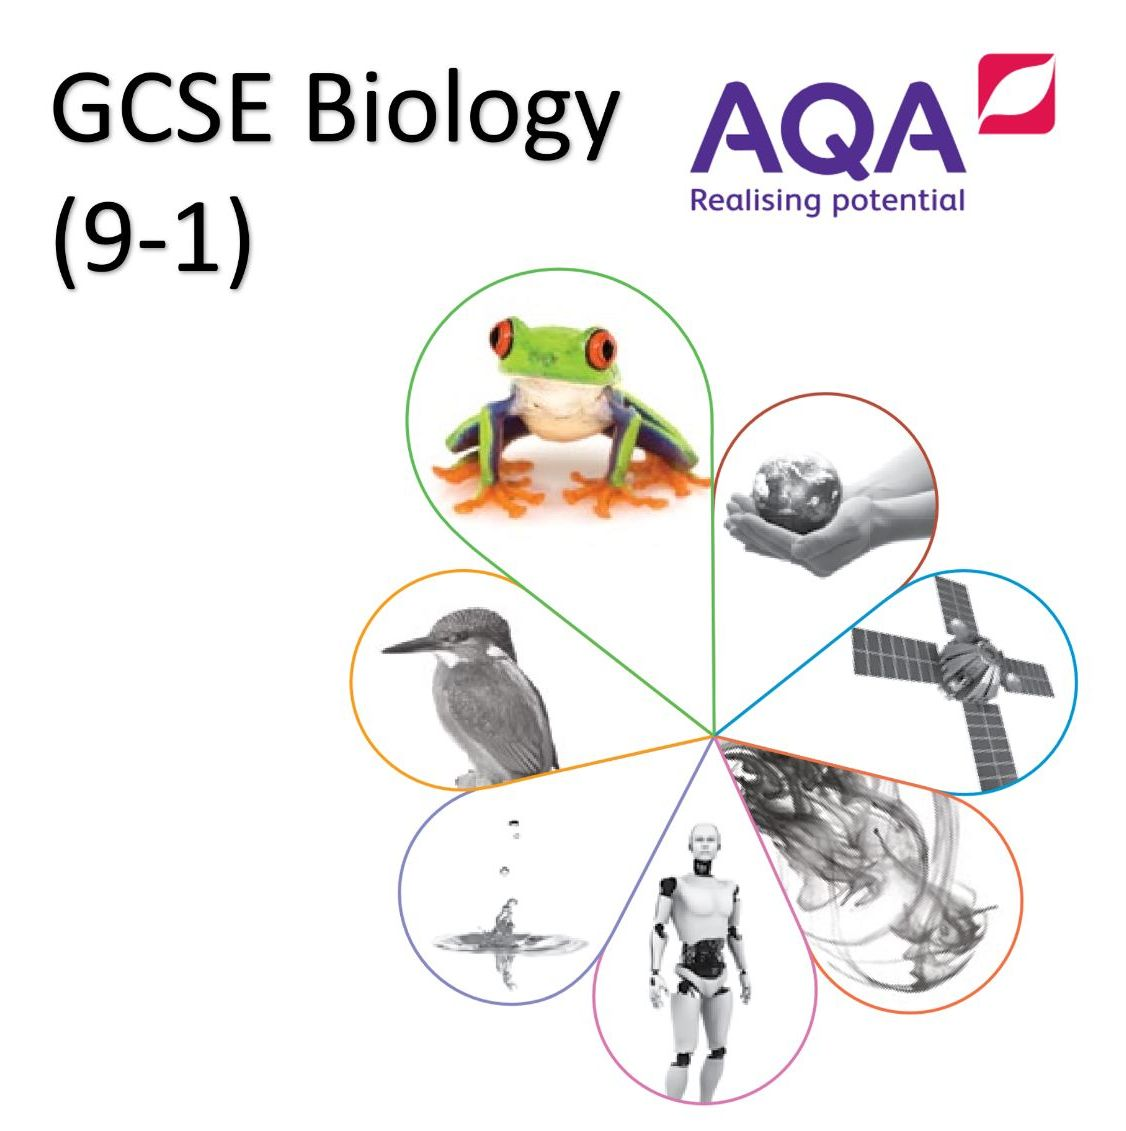 AQA GCSE Biology (9-1) Paper 2 Double Science Revision Summary Sheets